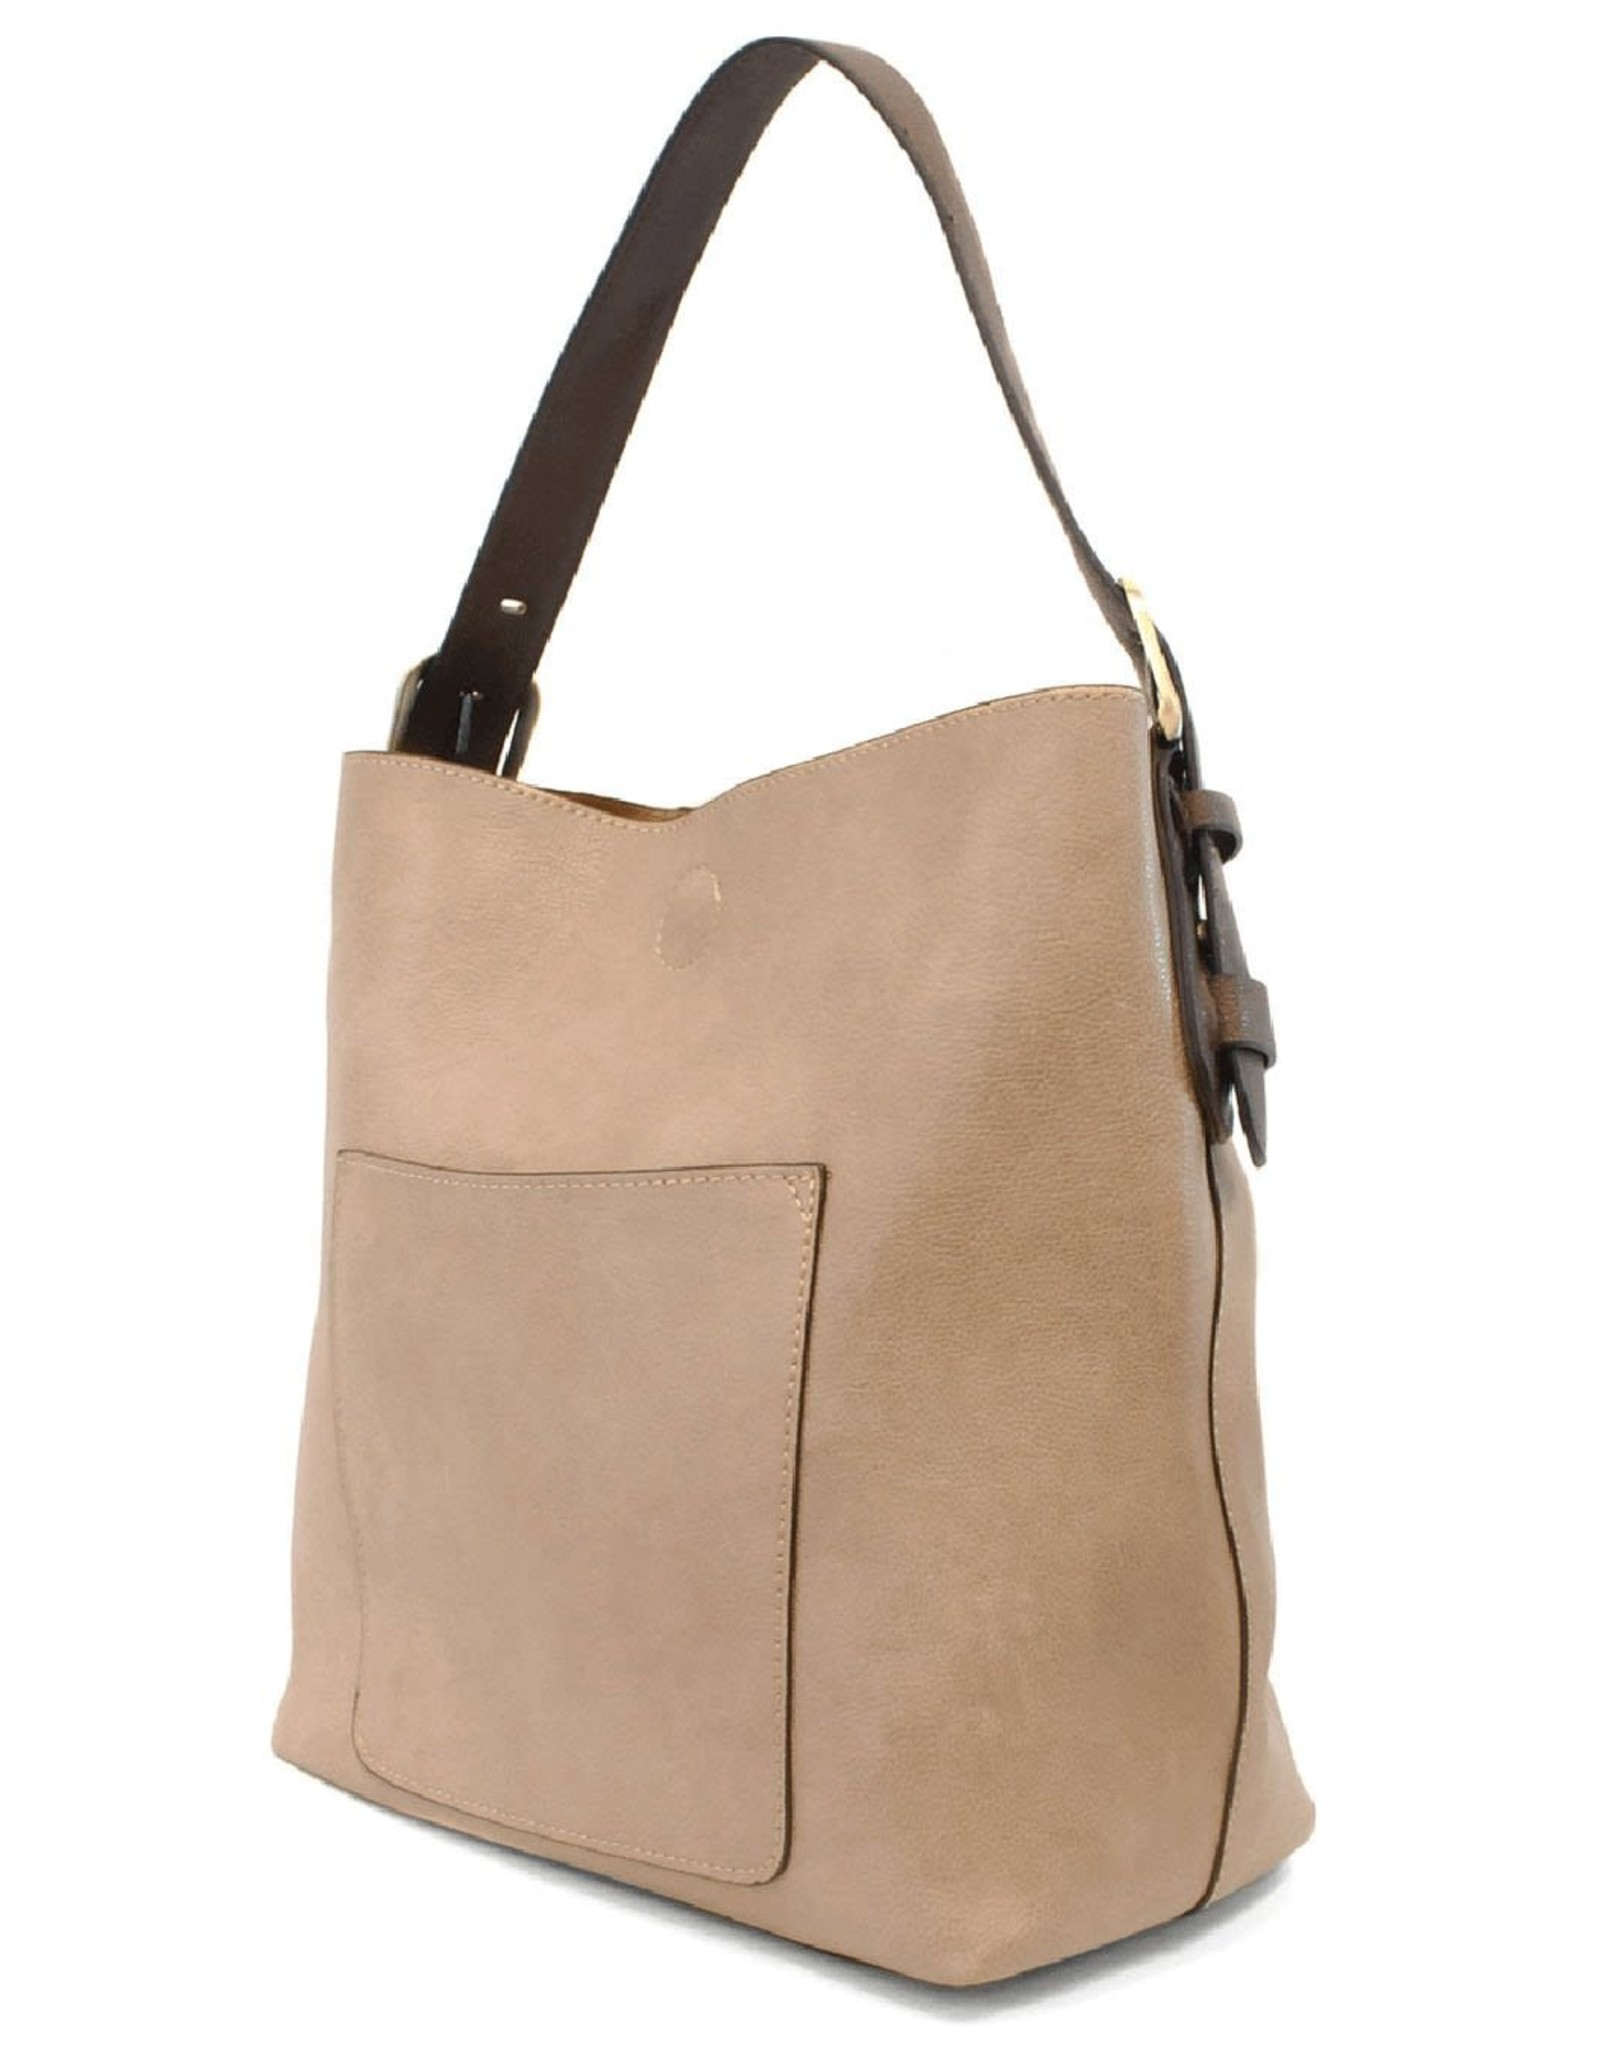 - Heather Grey Hobo Handbag w/Coffee Handle